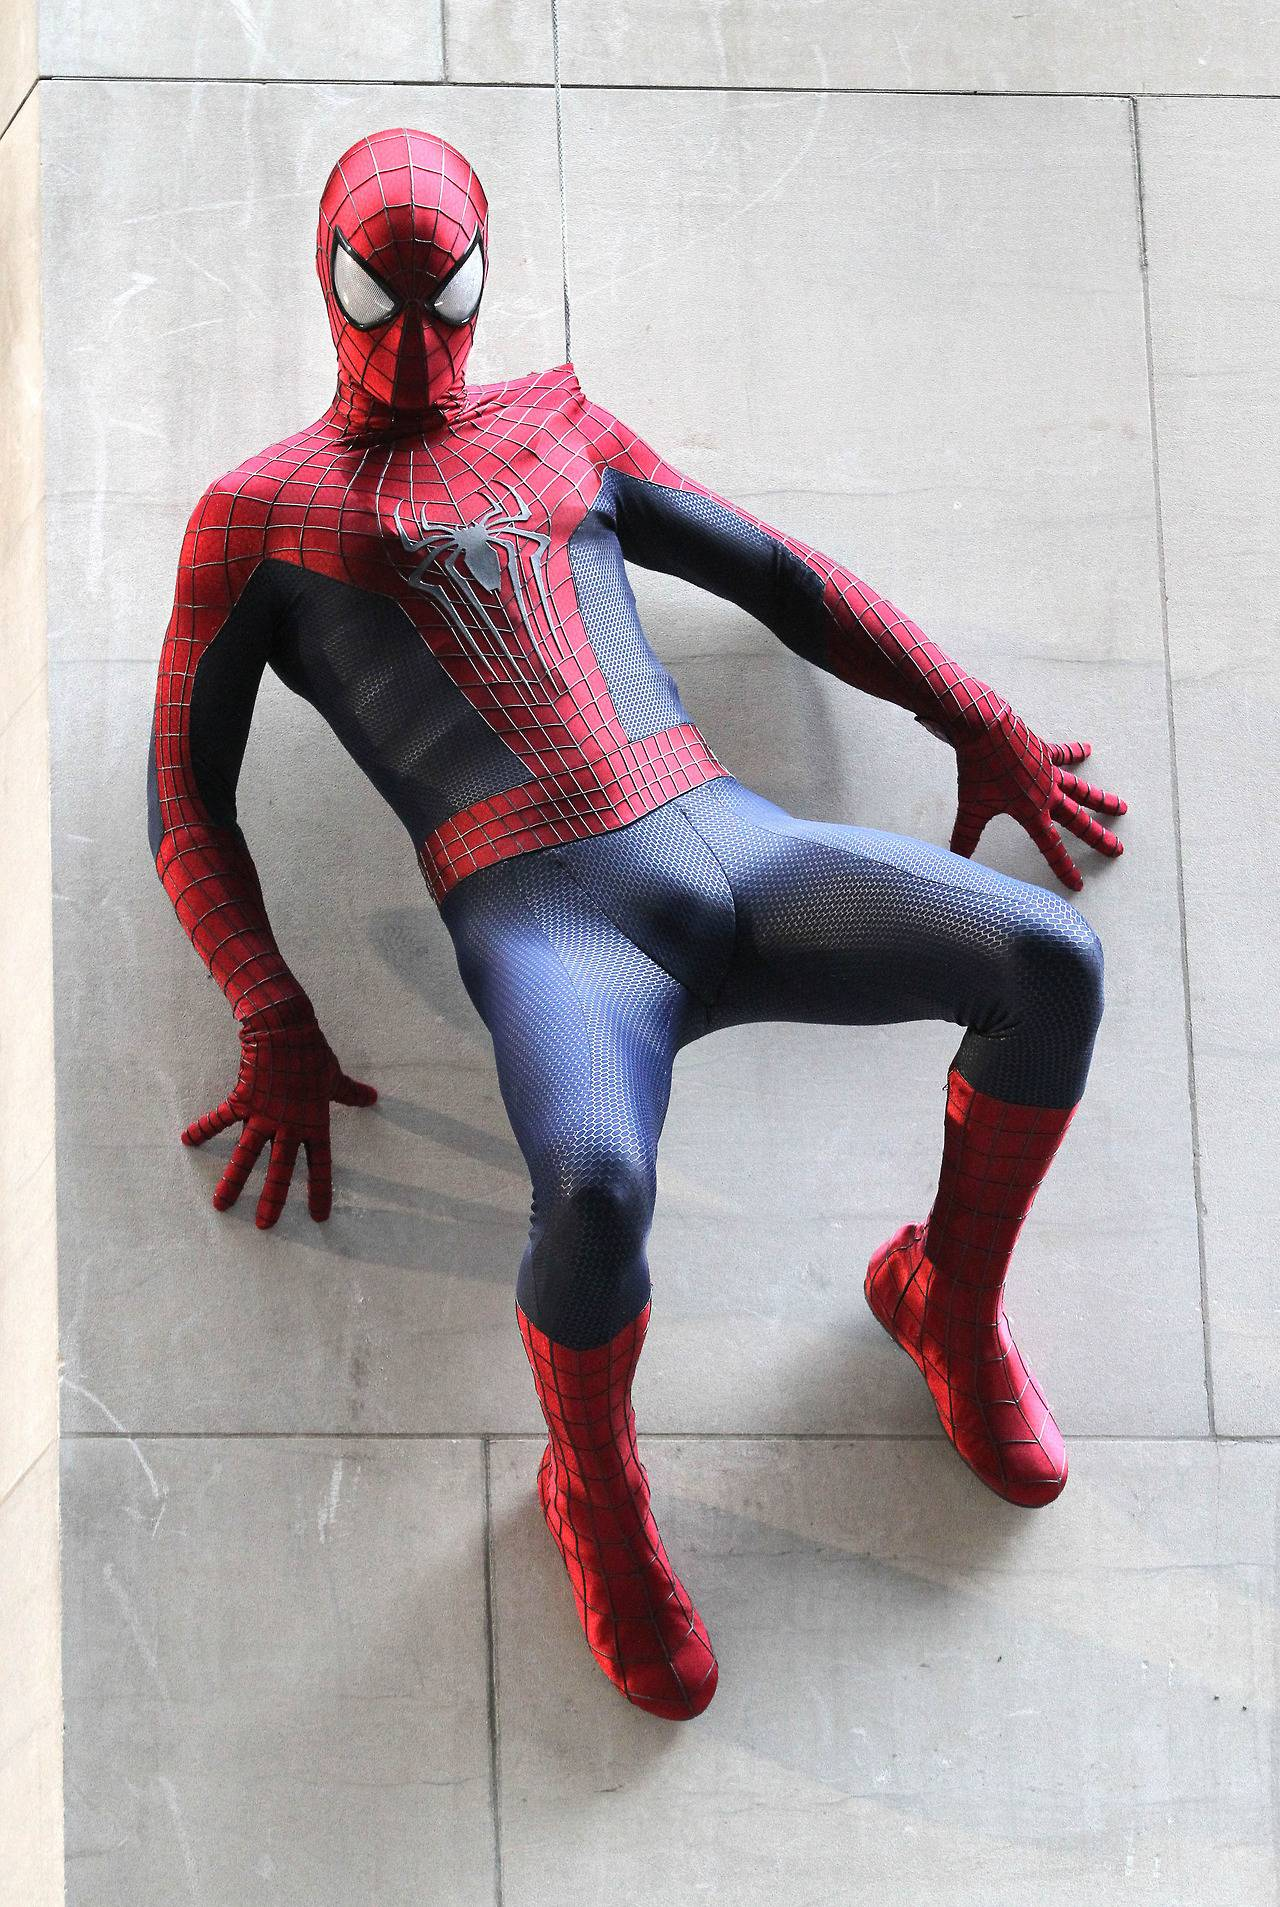 More pics of the Amazing Spider-Man 2 costume – Spider Man ...